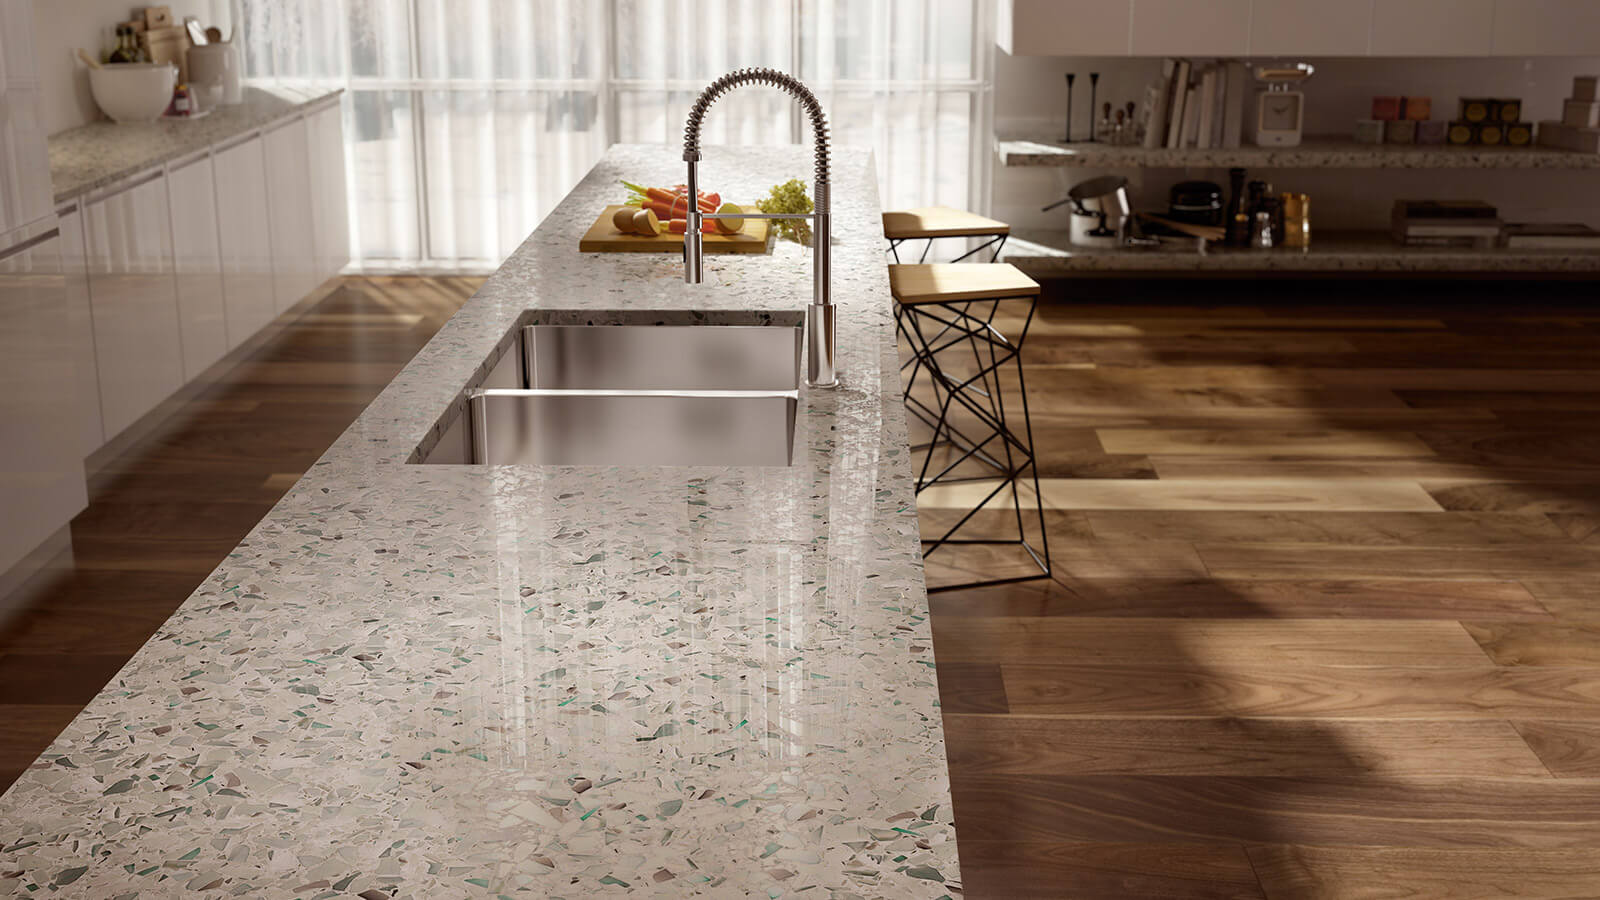 Think Glass Countertops Vetrazzo Recycled Glass Countertops Mosaics Tiles Flooring